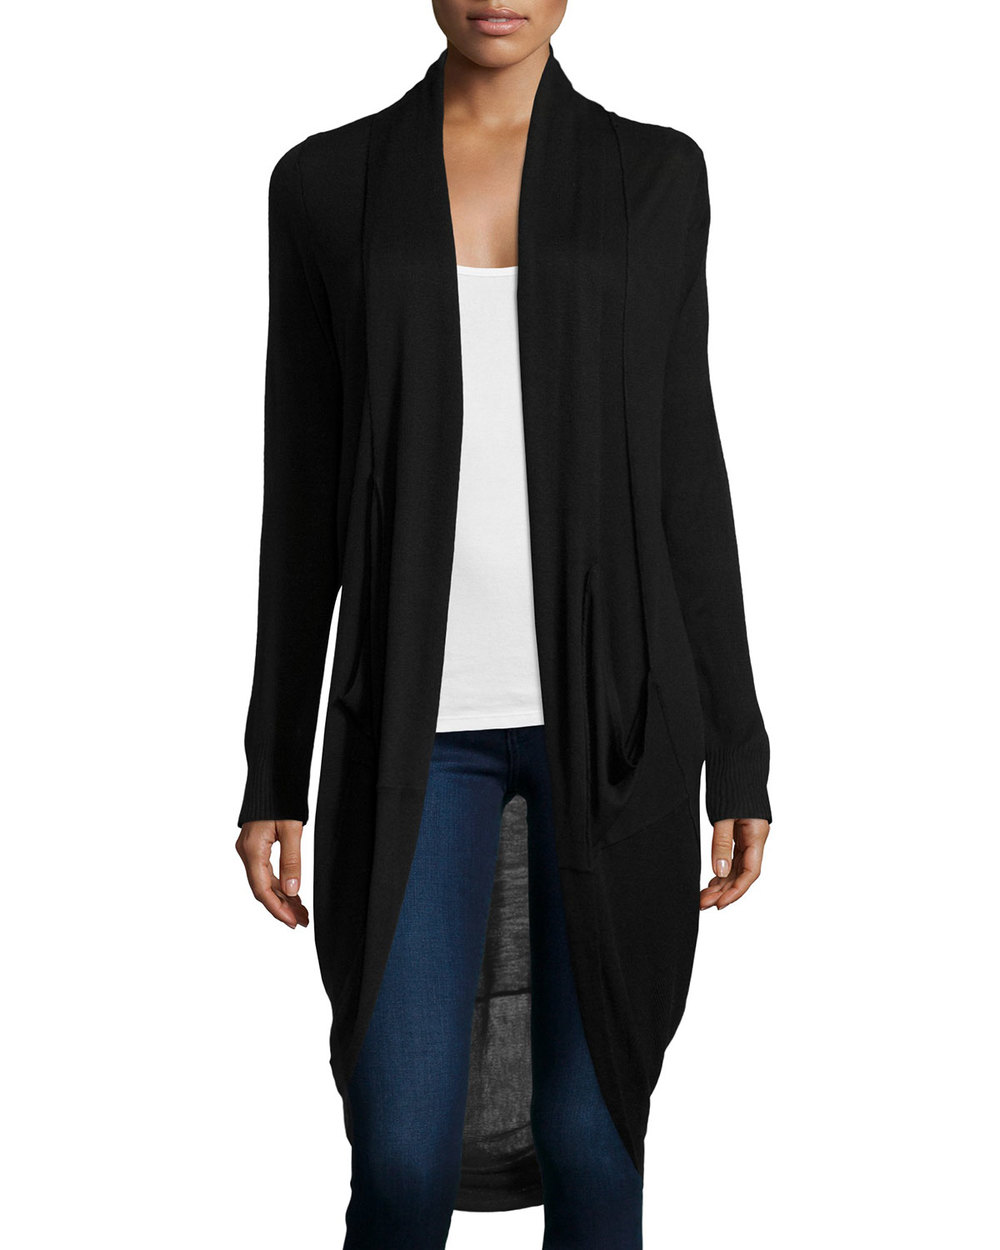 Neiman Marcus Draped Mixed Media Cardigan. Neiman Marcus Last Call. Was: $119. Now: $42.